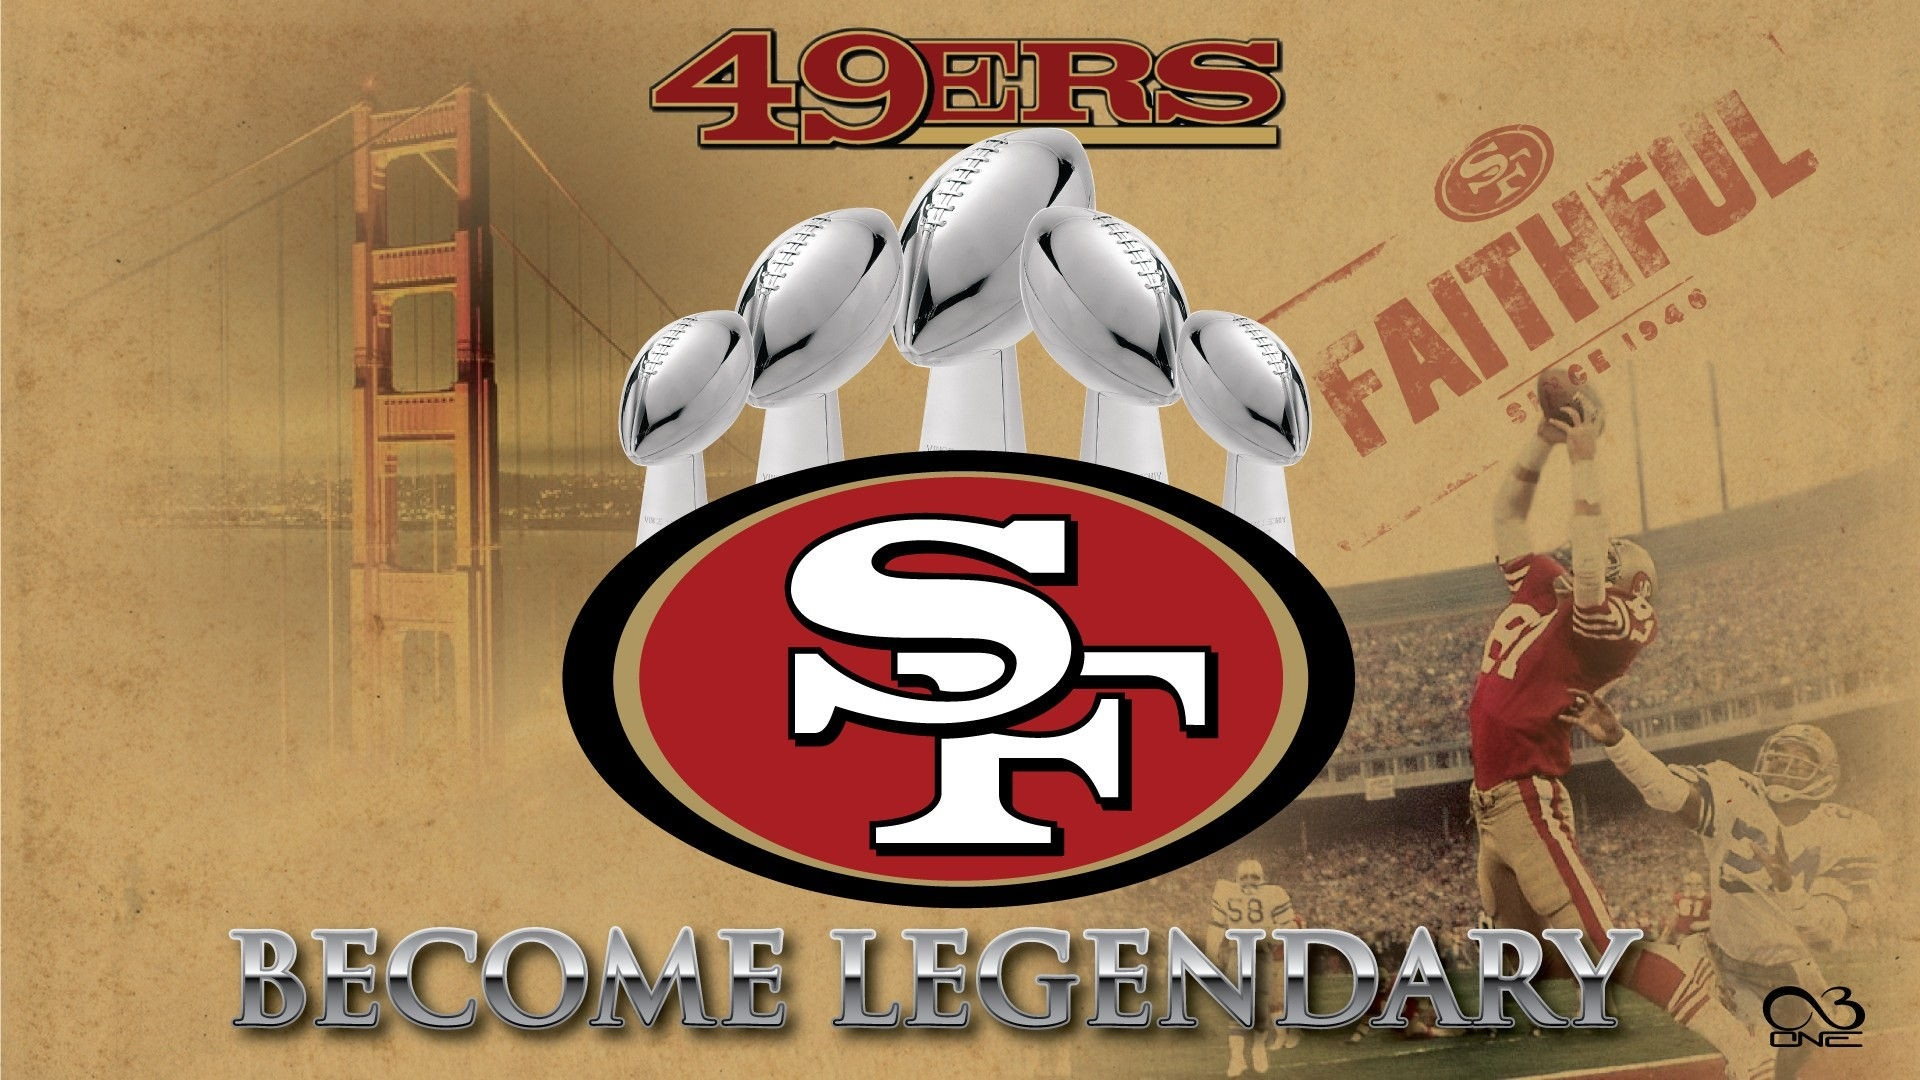 San Francisco 49ers Wallpaper For Mac Backgrounds 2020 NFL 1920x1080